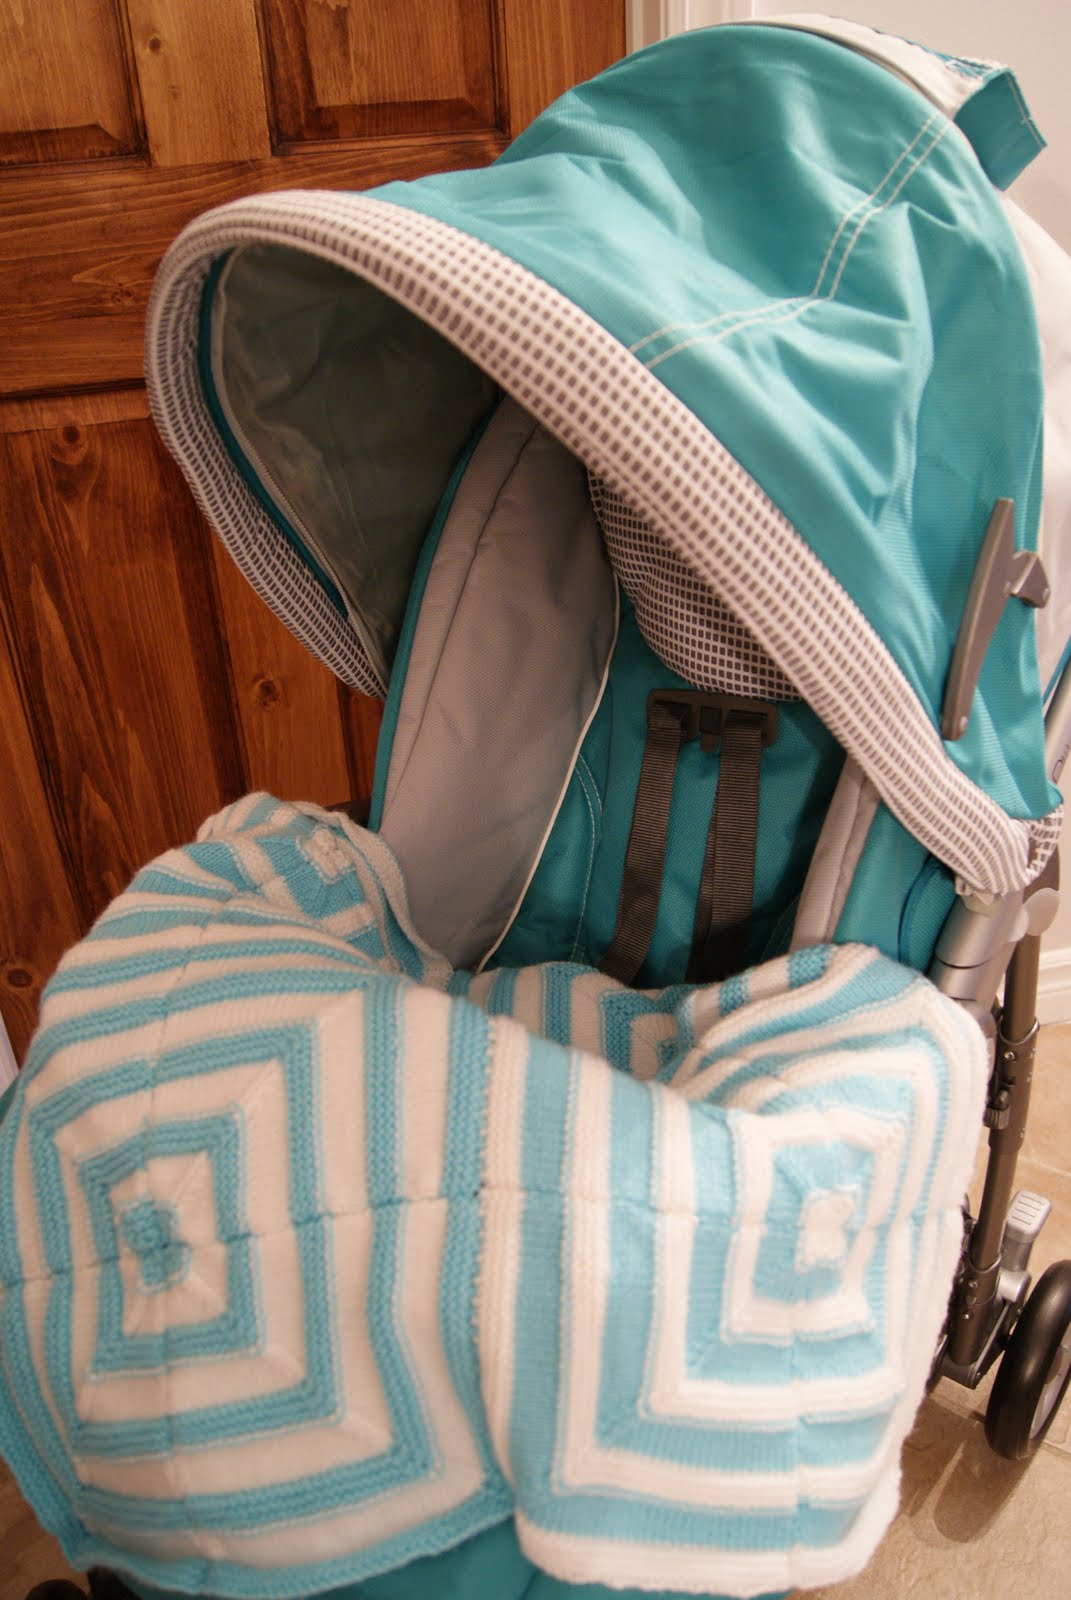 Crochet Baby Patterns Pram Covers and Blankets